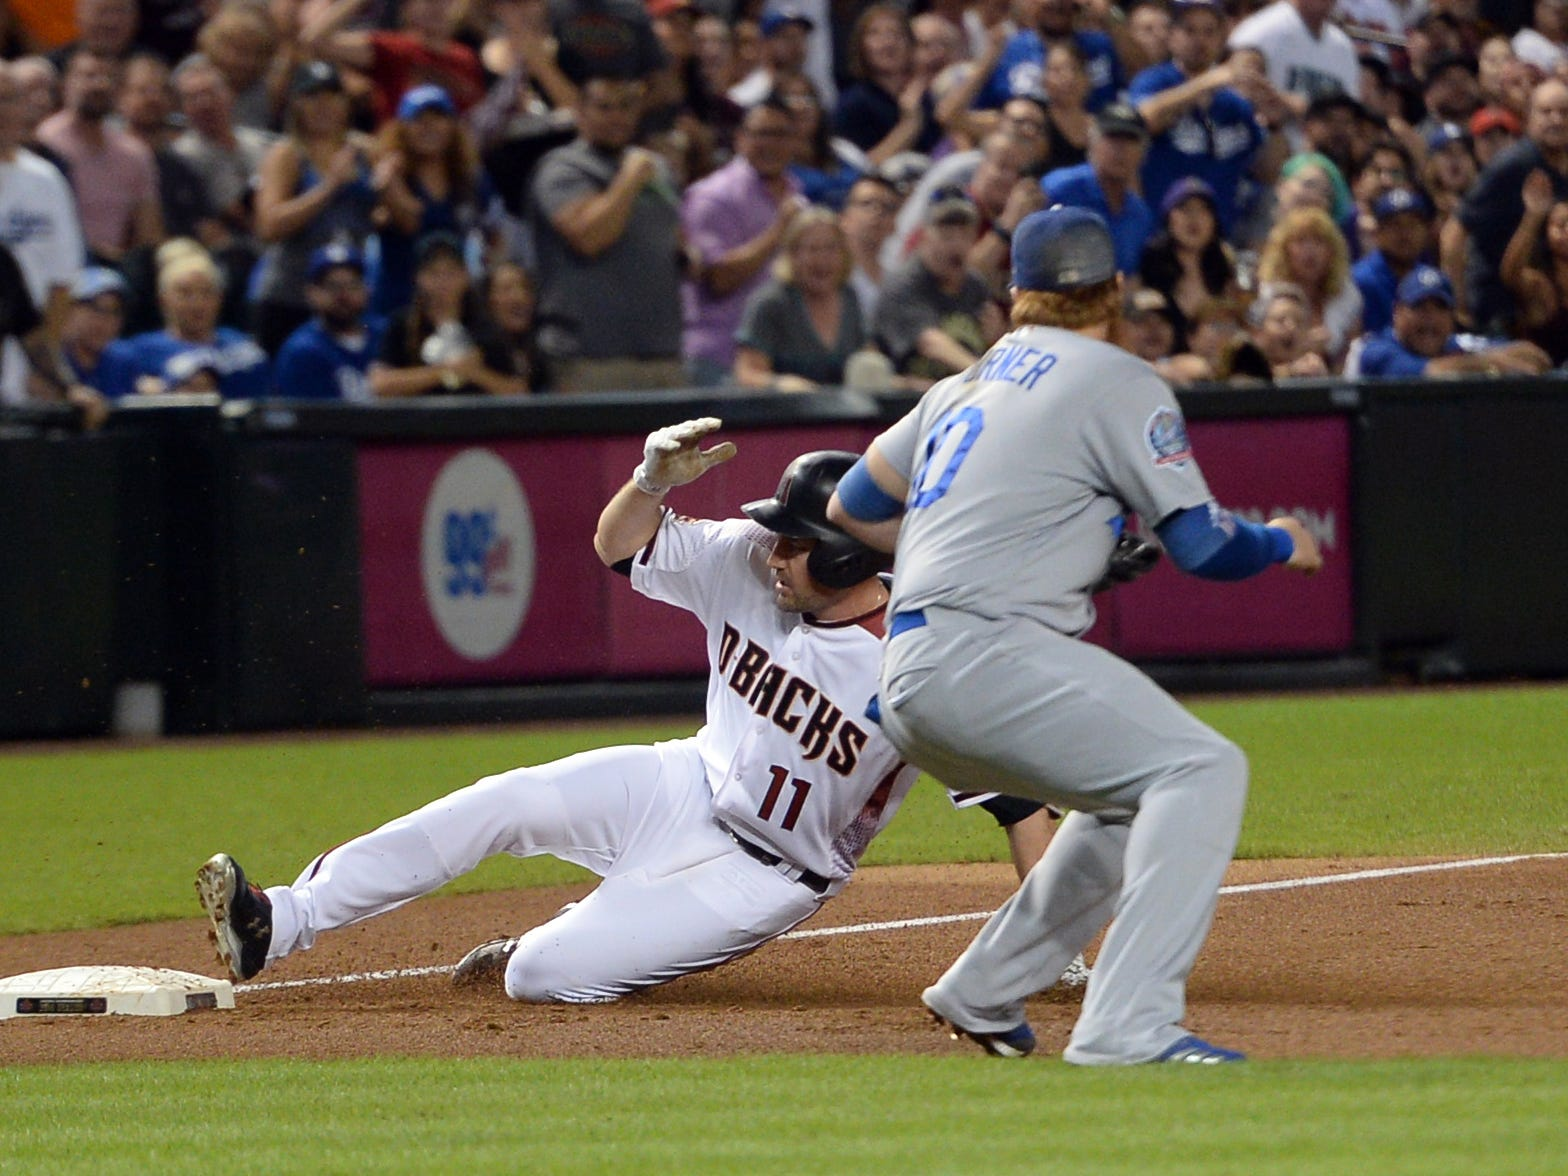 Sep 26, 2018; Phoenix, AZ, USA; Arizona Diamondbacks center fielder A.J. Pollock (11) slides into third base safely ahead of the tag of Los Angeles Dodgers third baseman Justin Turner (10) for a triple during the second inning at Chase Field.